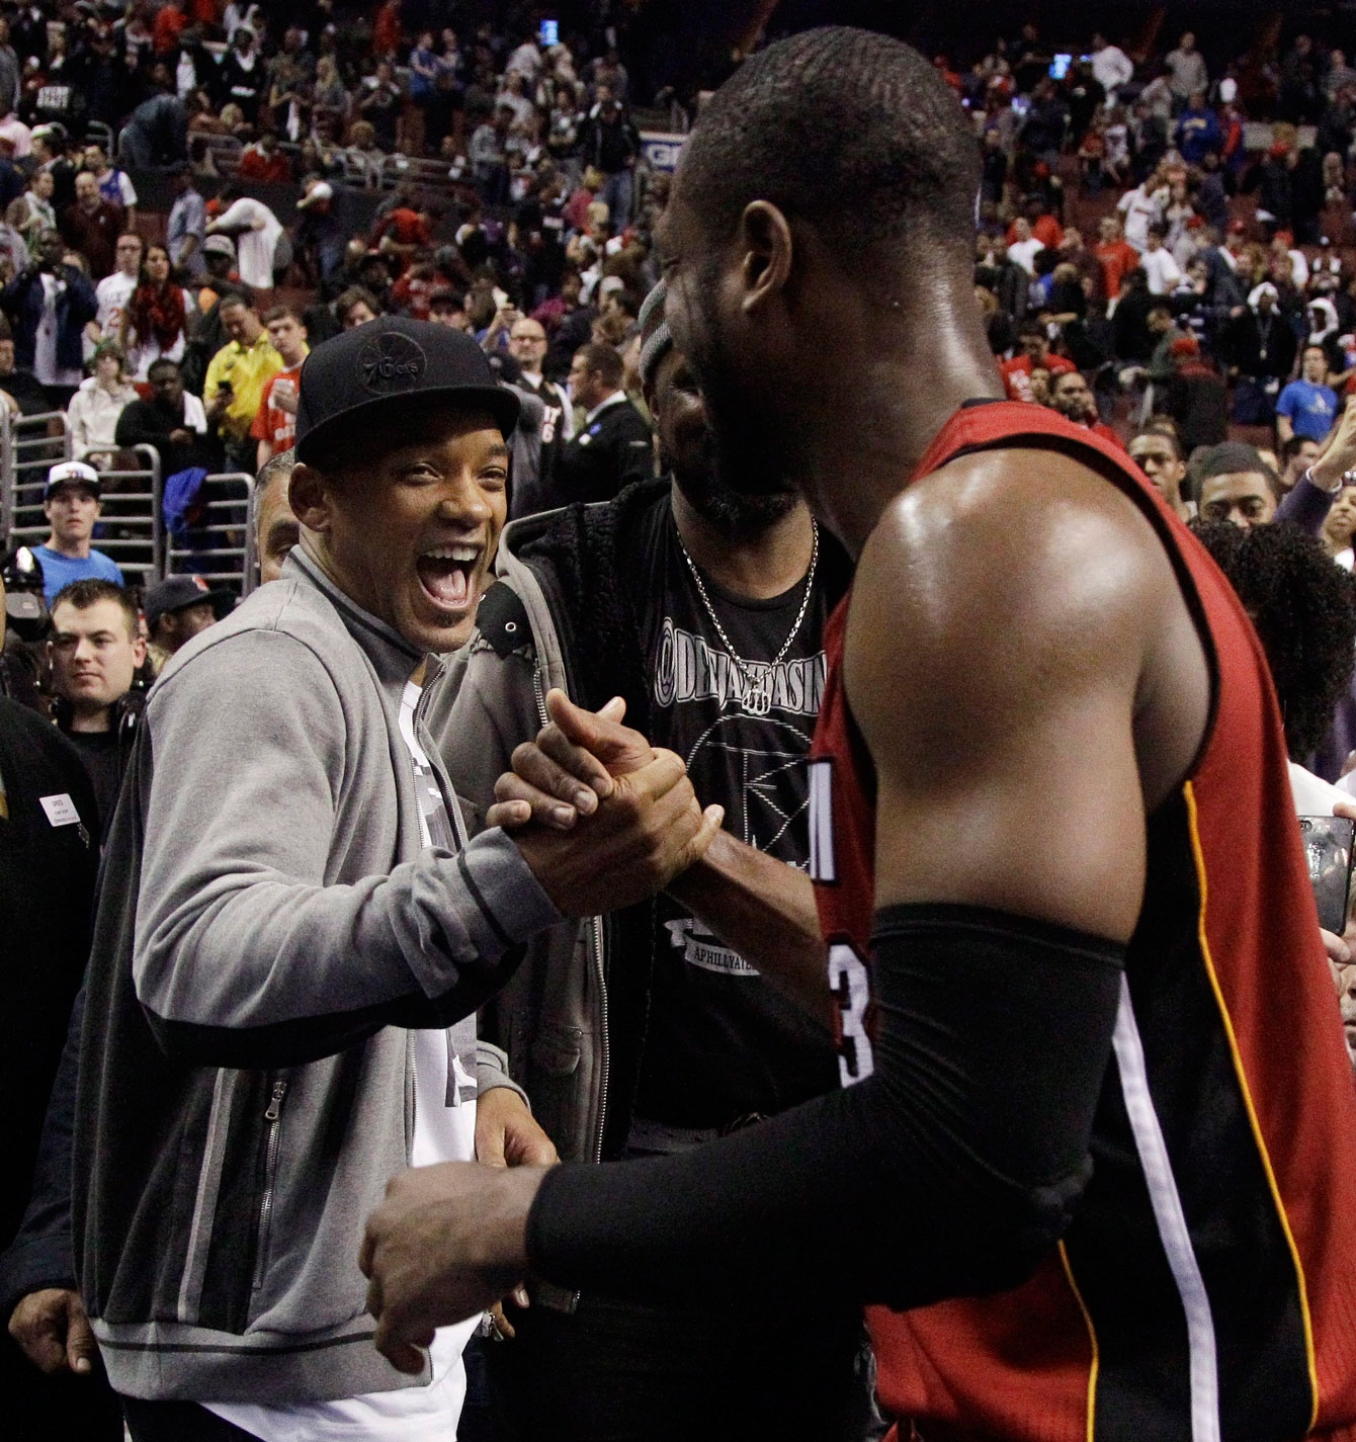 Will Smith shaking hands with Dwyane Wade. Photo: CP